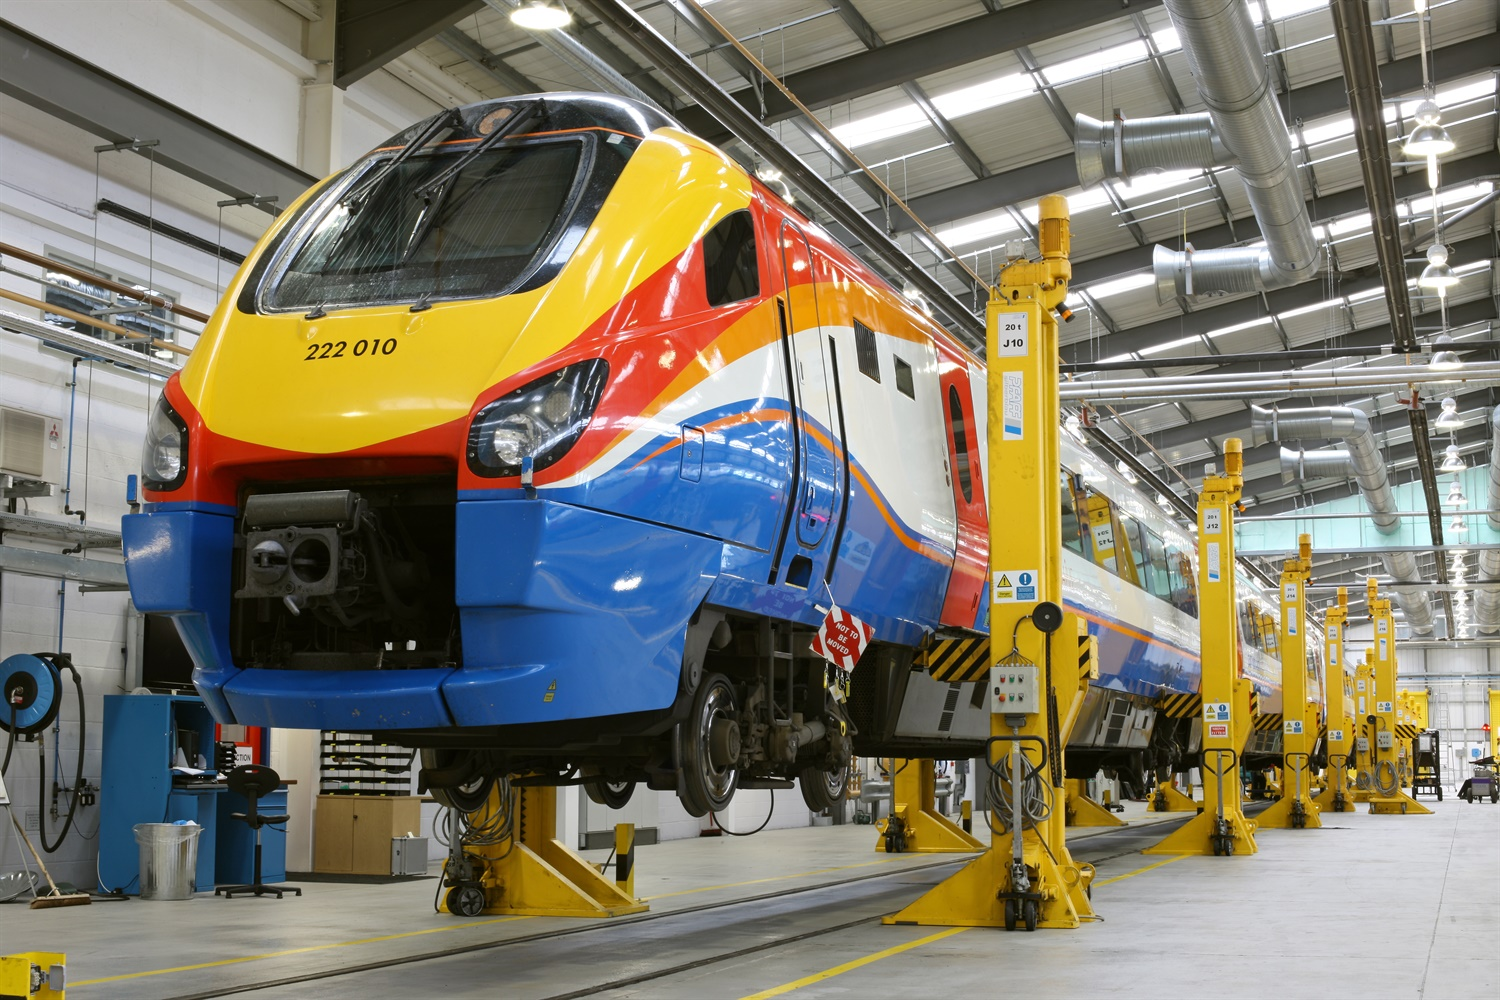 East Midlands Trains extends maintenance contract with Bombardier